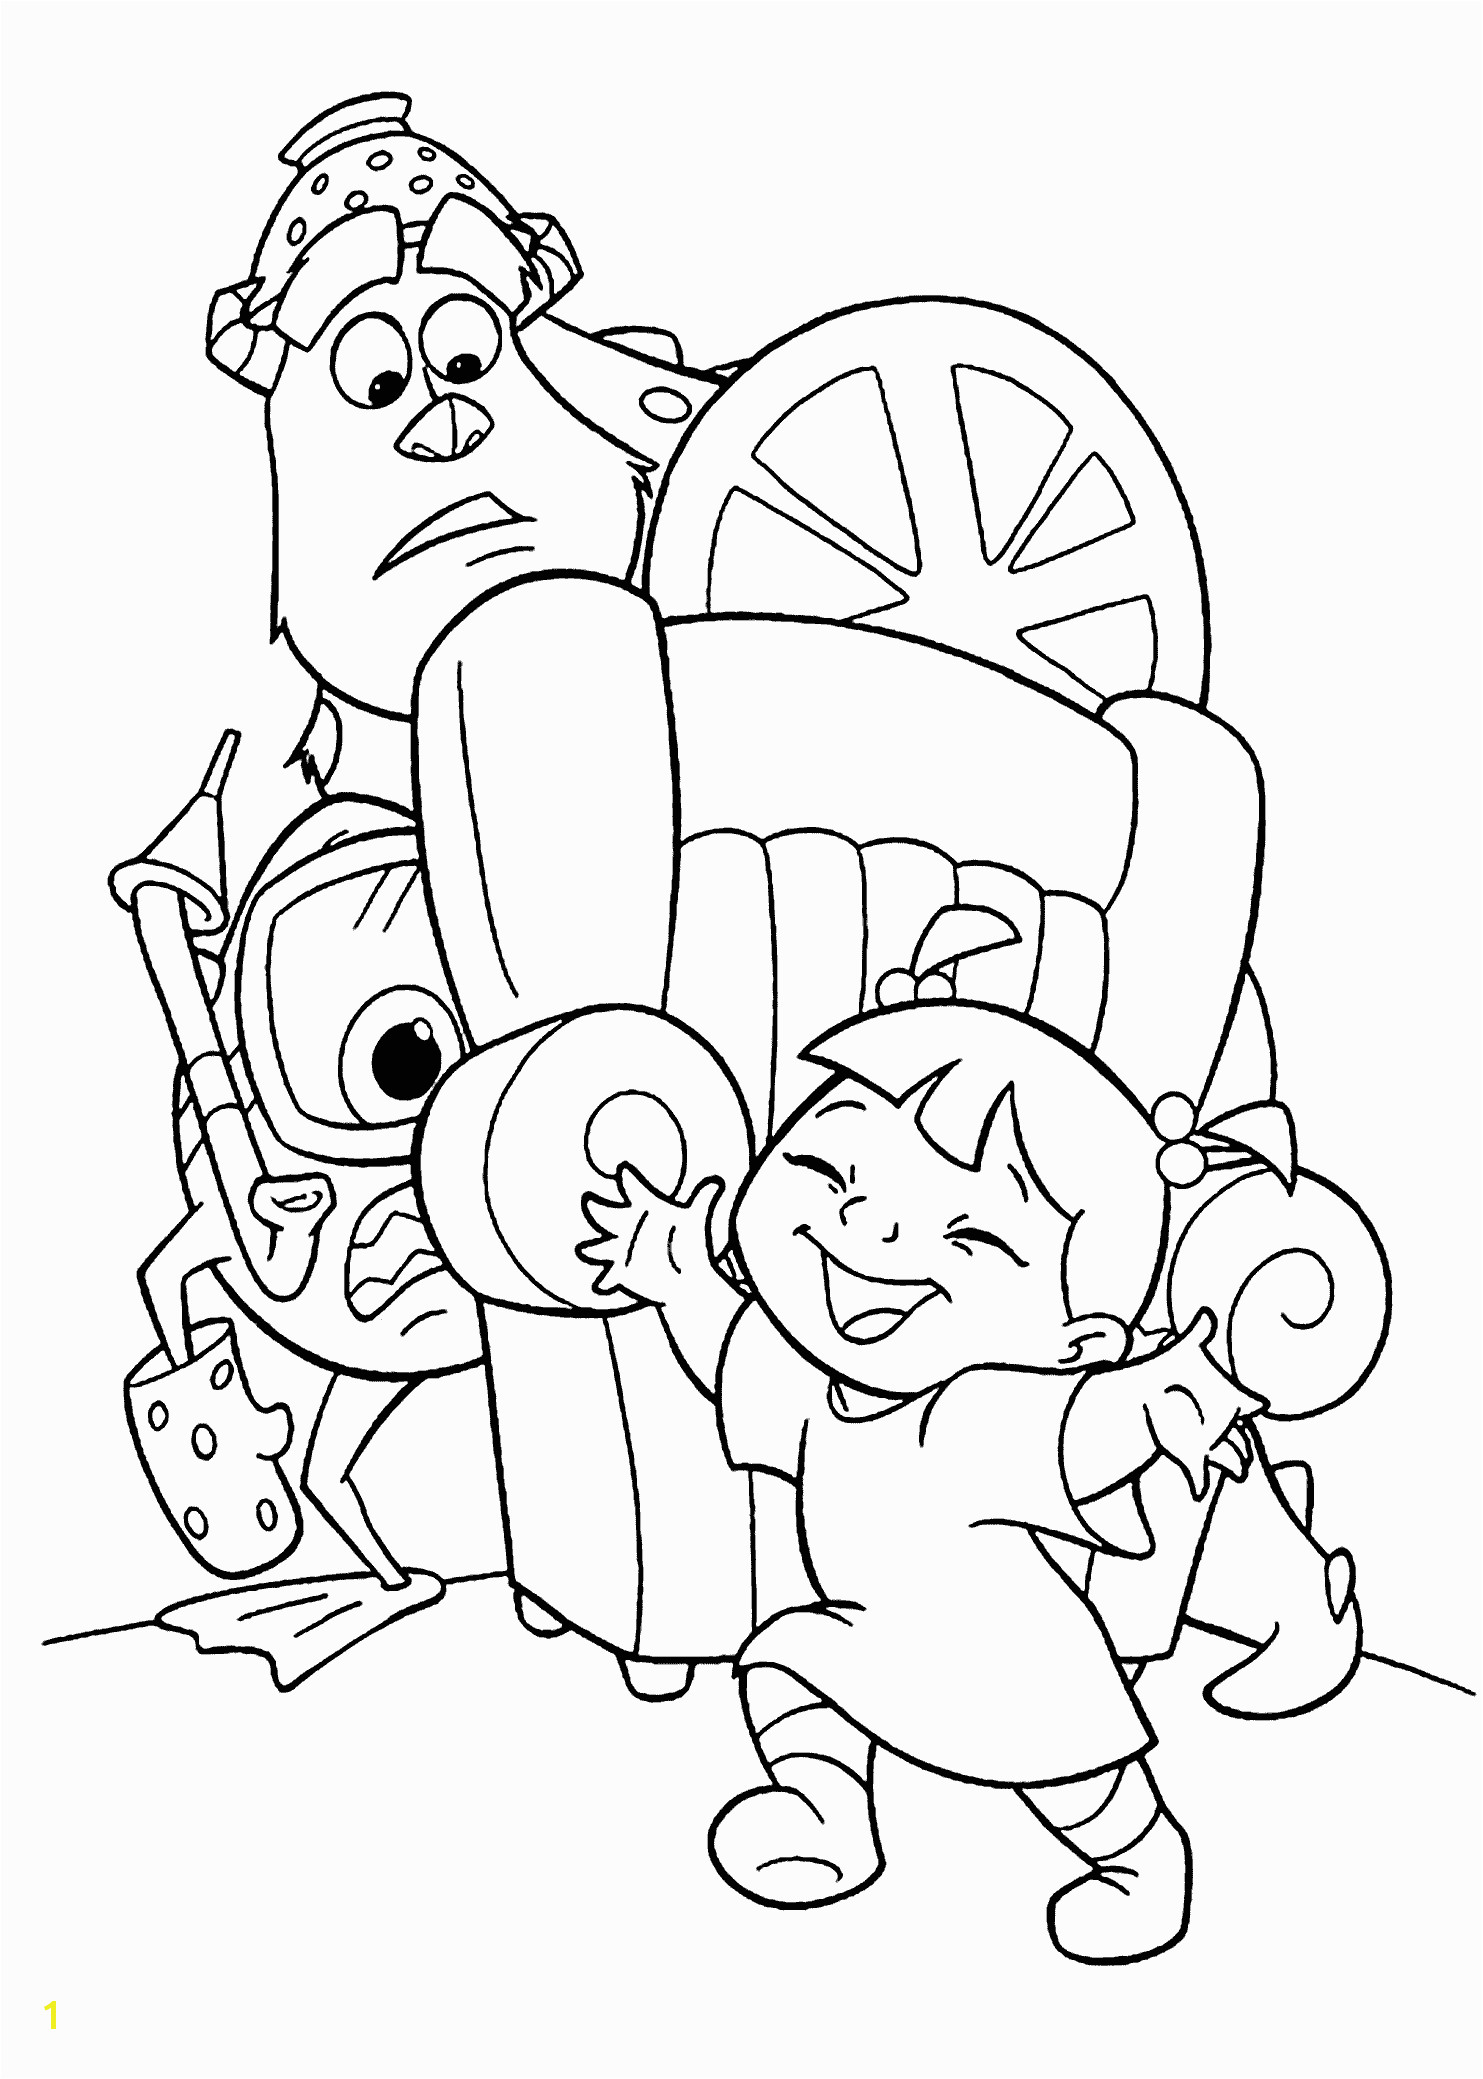 Sully Monsters Inc Coloring Page Coloring Games